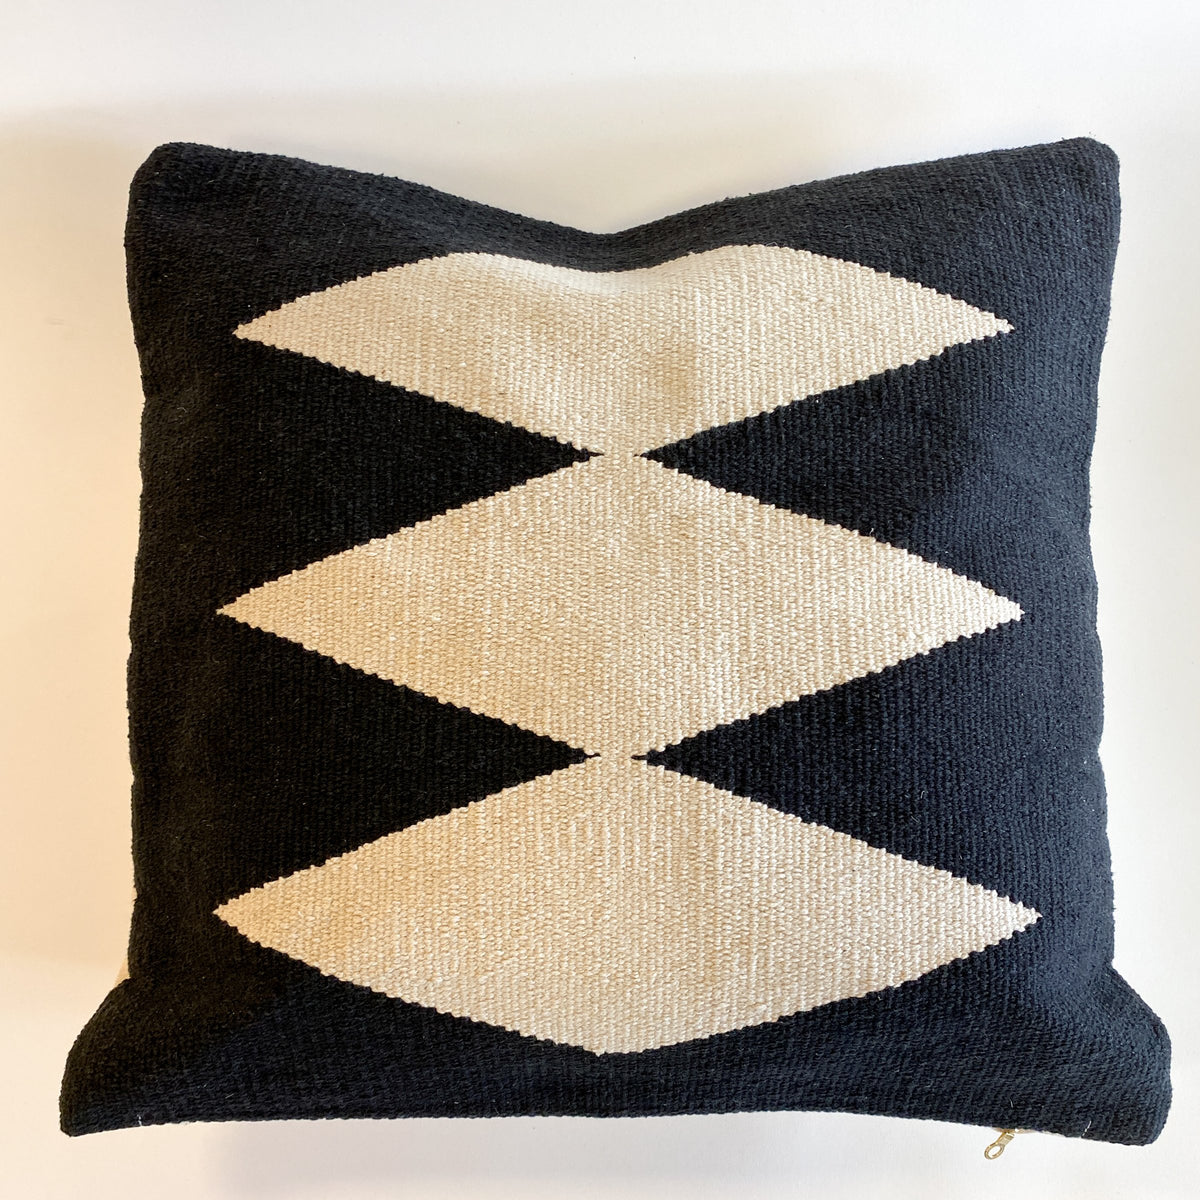 Mana Handwoven Black and Cream Pillow